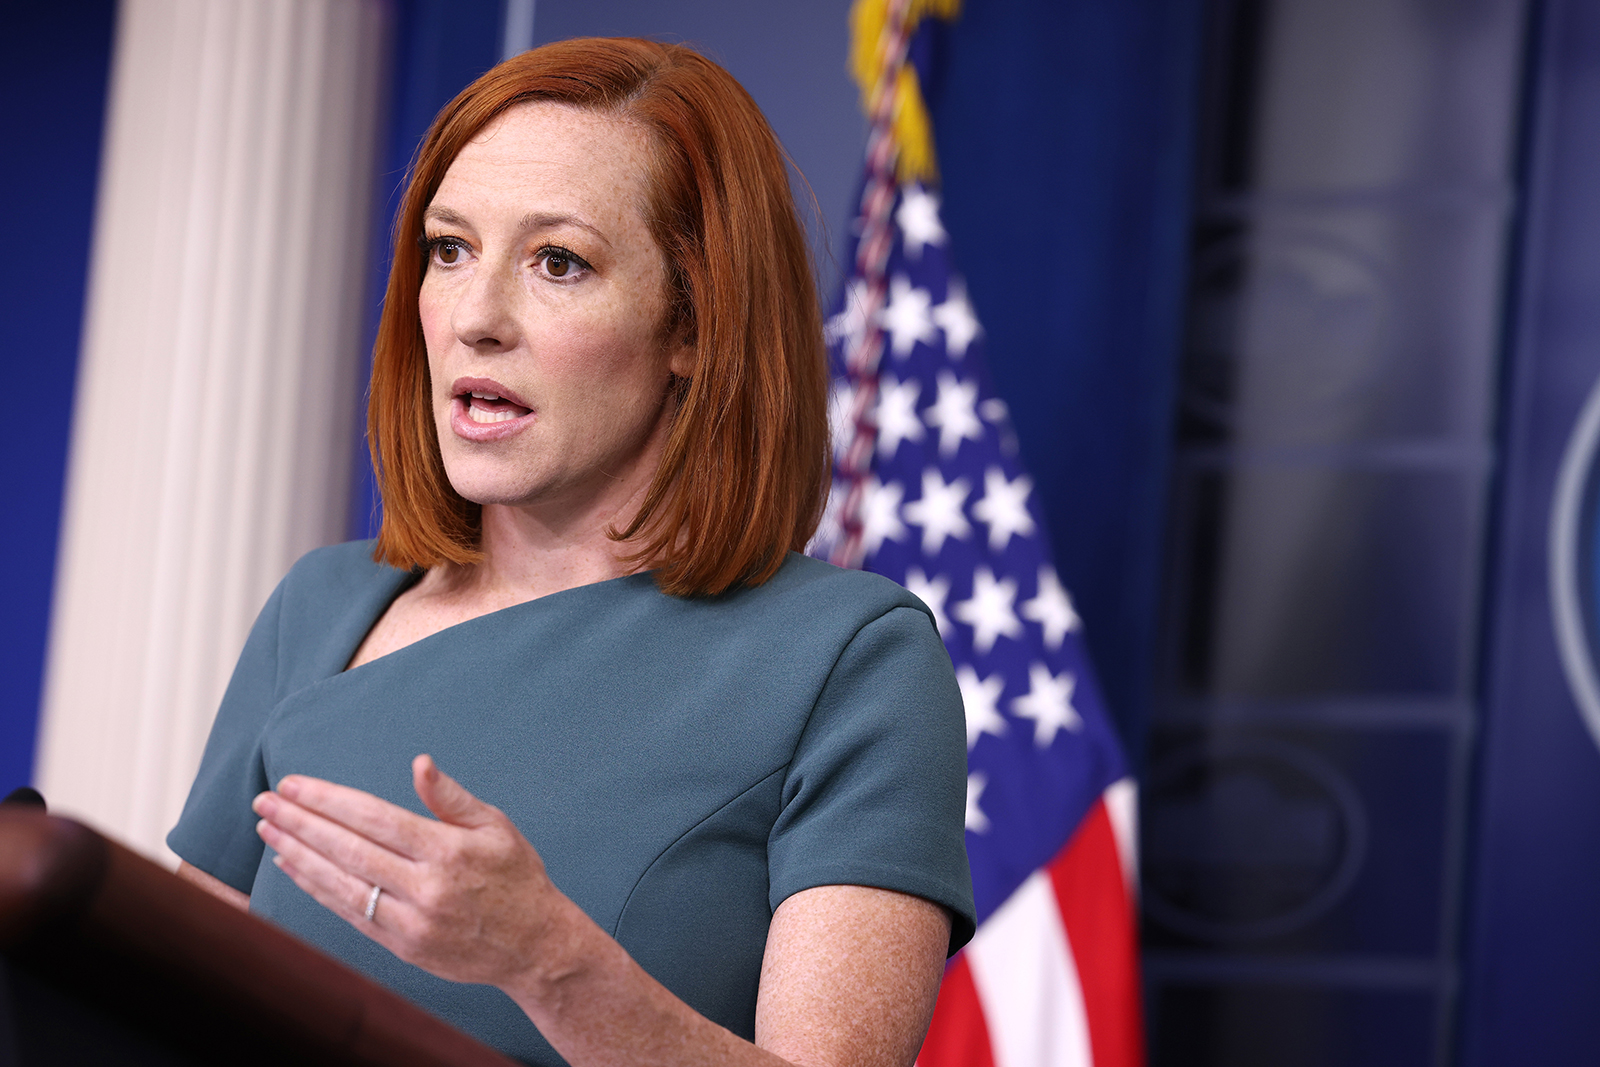 White House Press Secretary Jen Psaki gestures during a press conference in the James Brady Press Briefing Room of the White House on May 20, in Washington, DC.